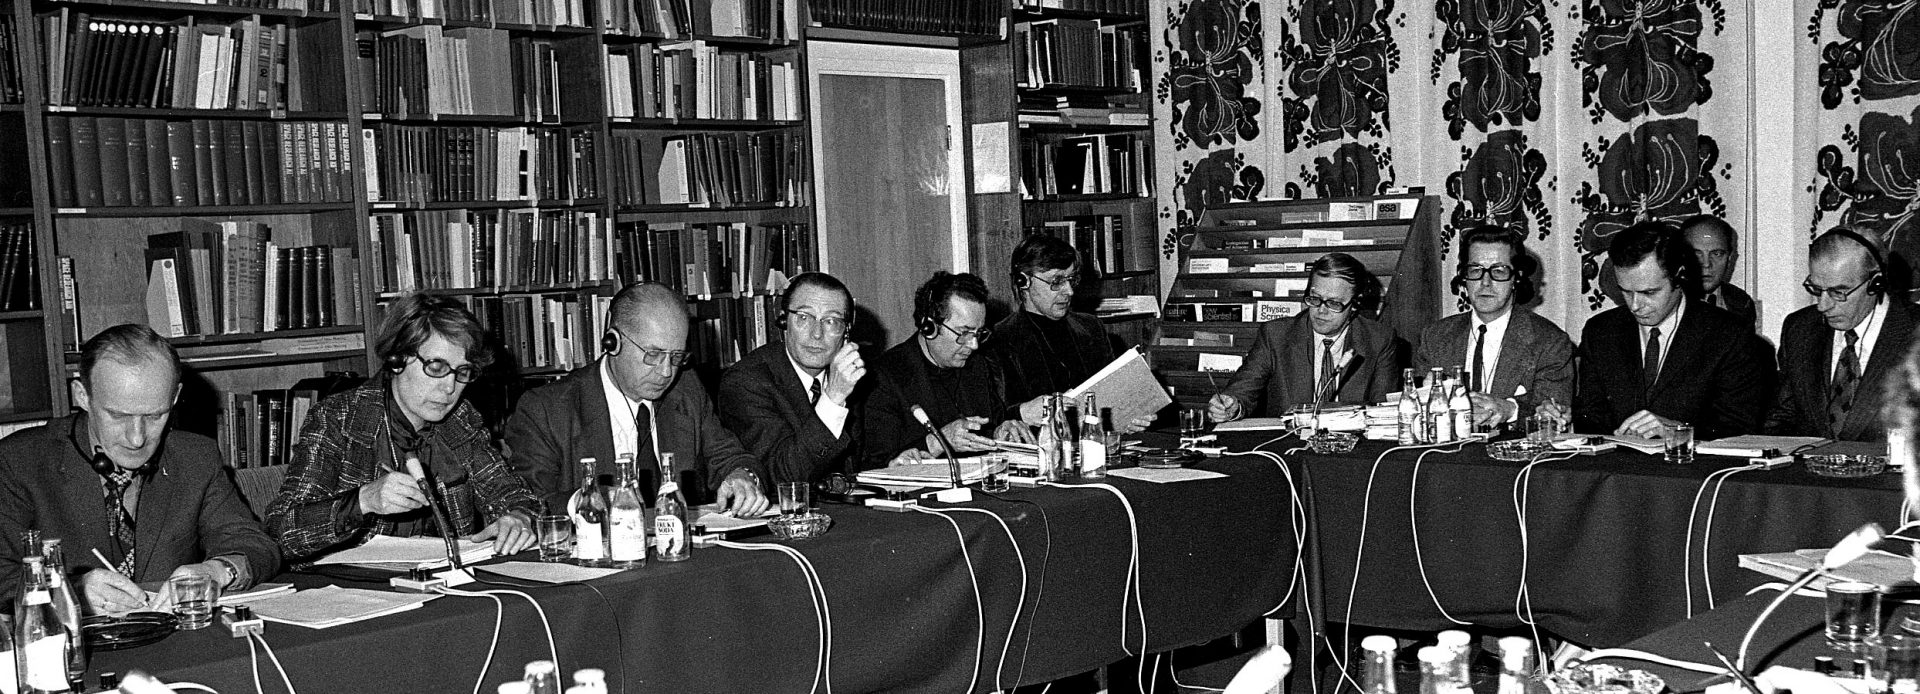 The first Council meeting held in Kiruna in 1976